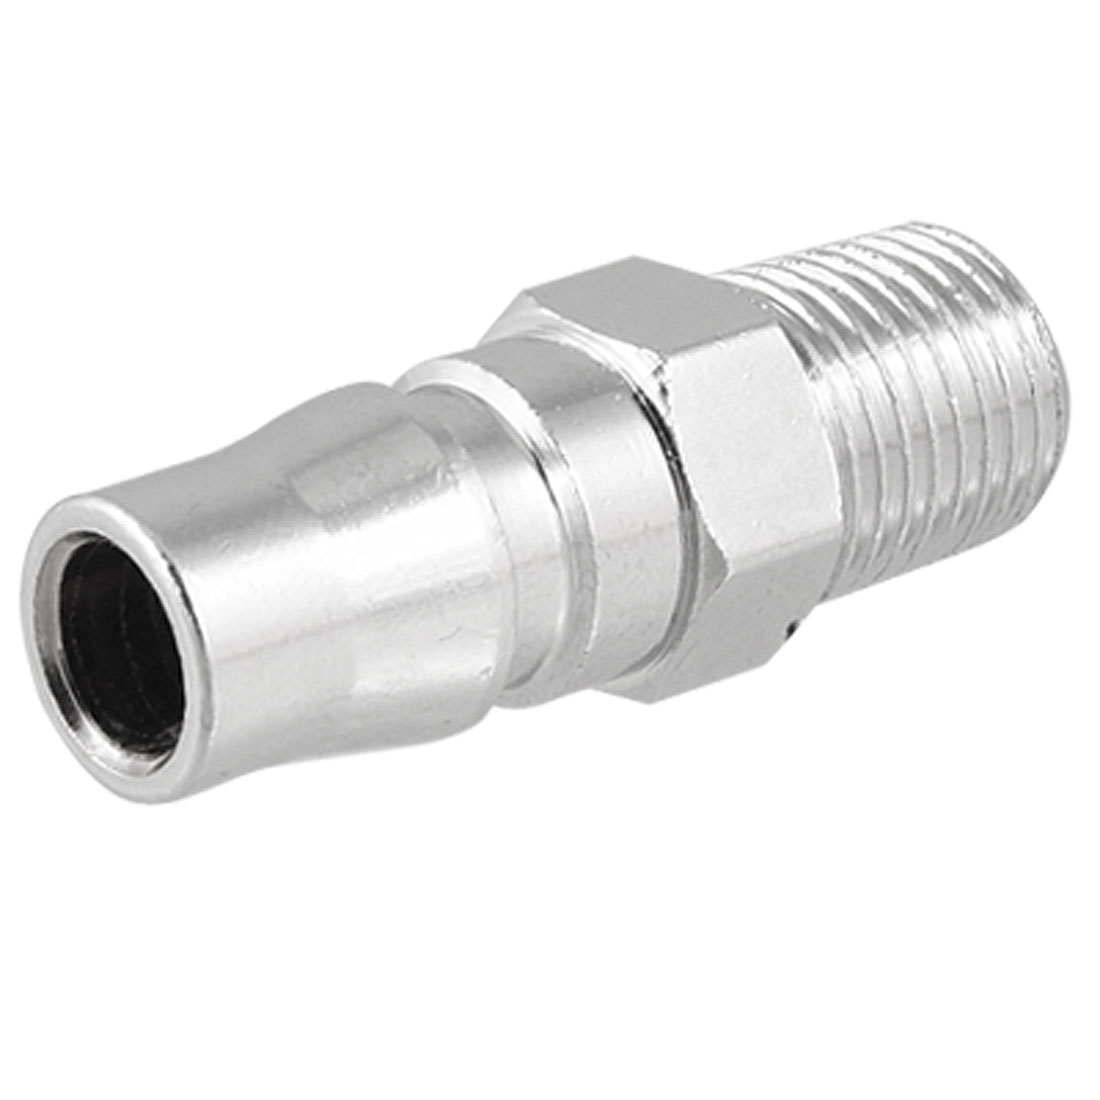 "20 PM Quick Coupler 1/2"" Male Thread Pneumatic Connector"